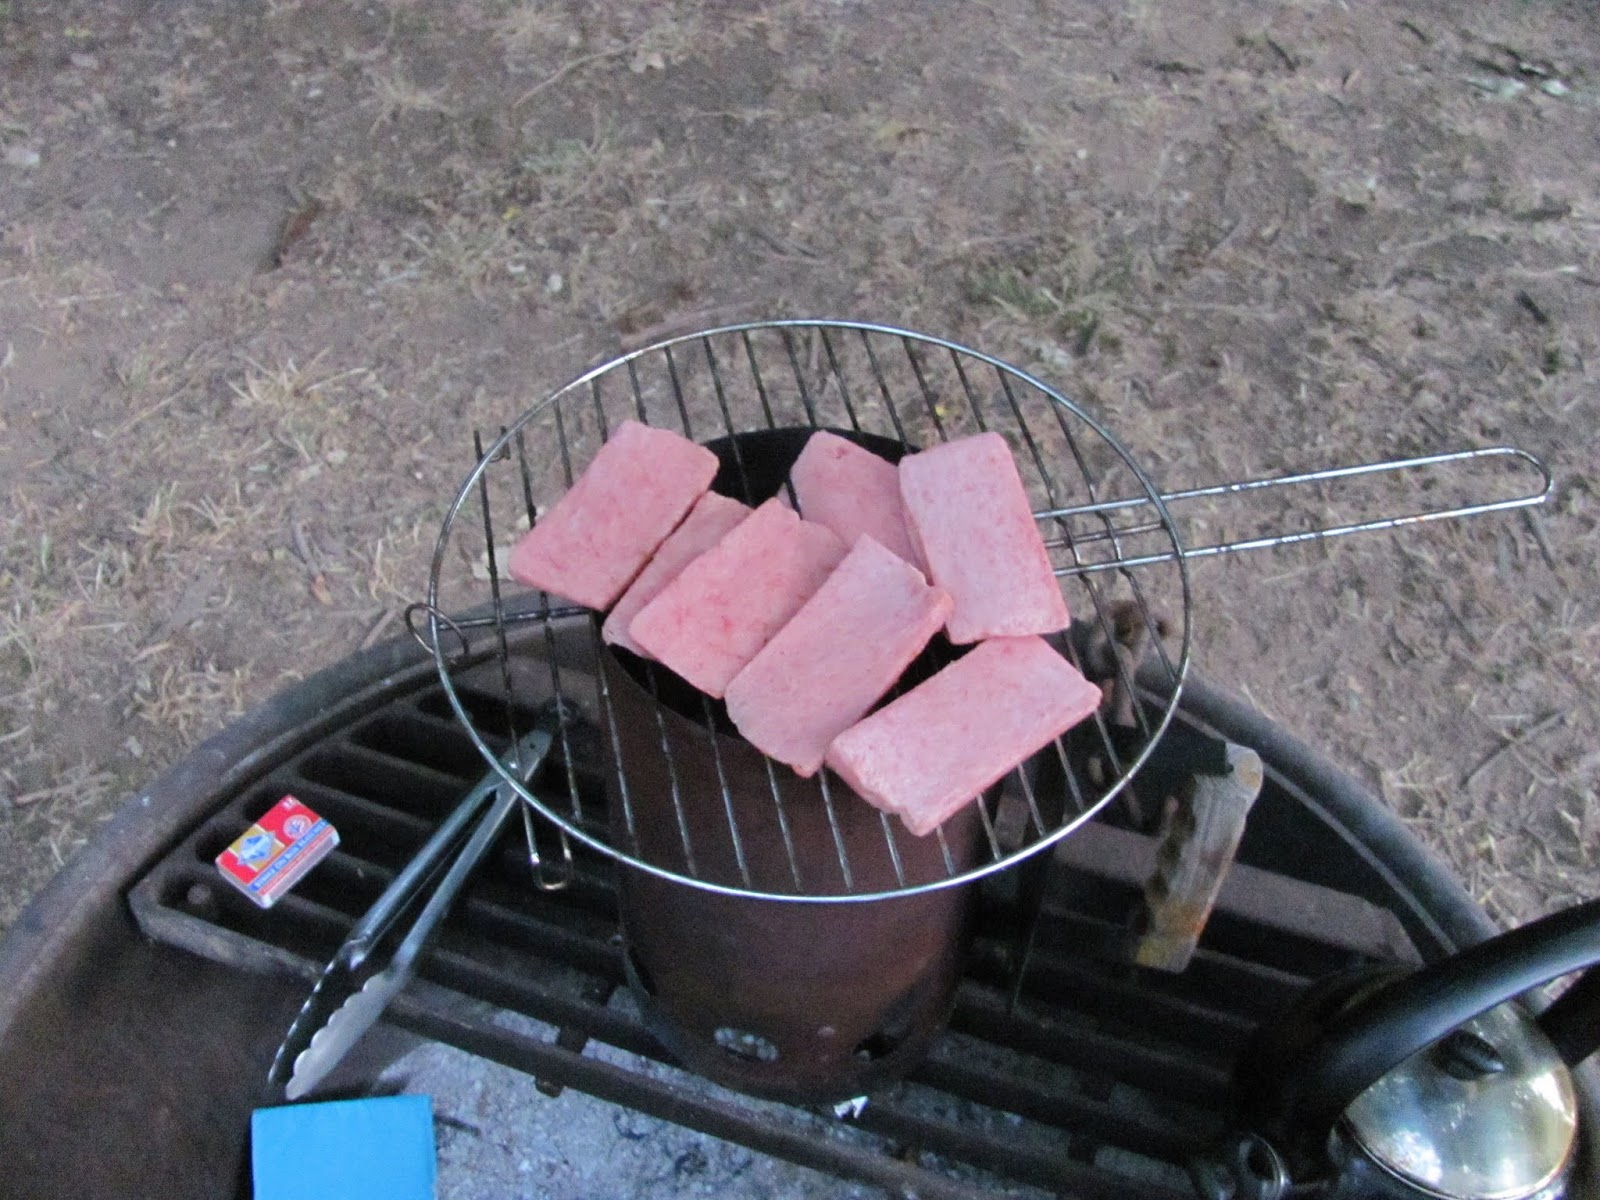 Slices of SPAM cook on a grate over the charcoal chimney at Casswell State Park, California